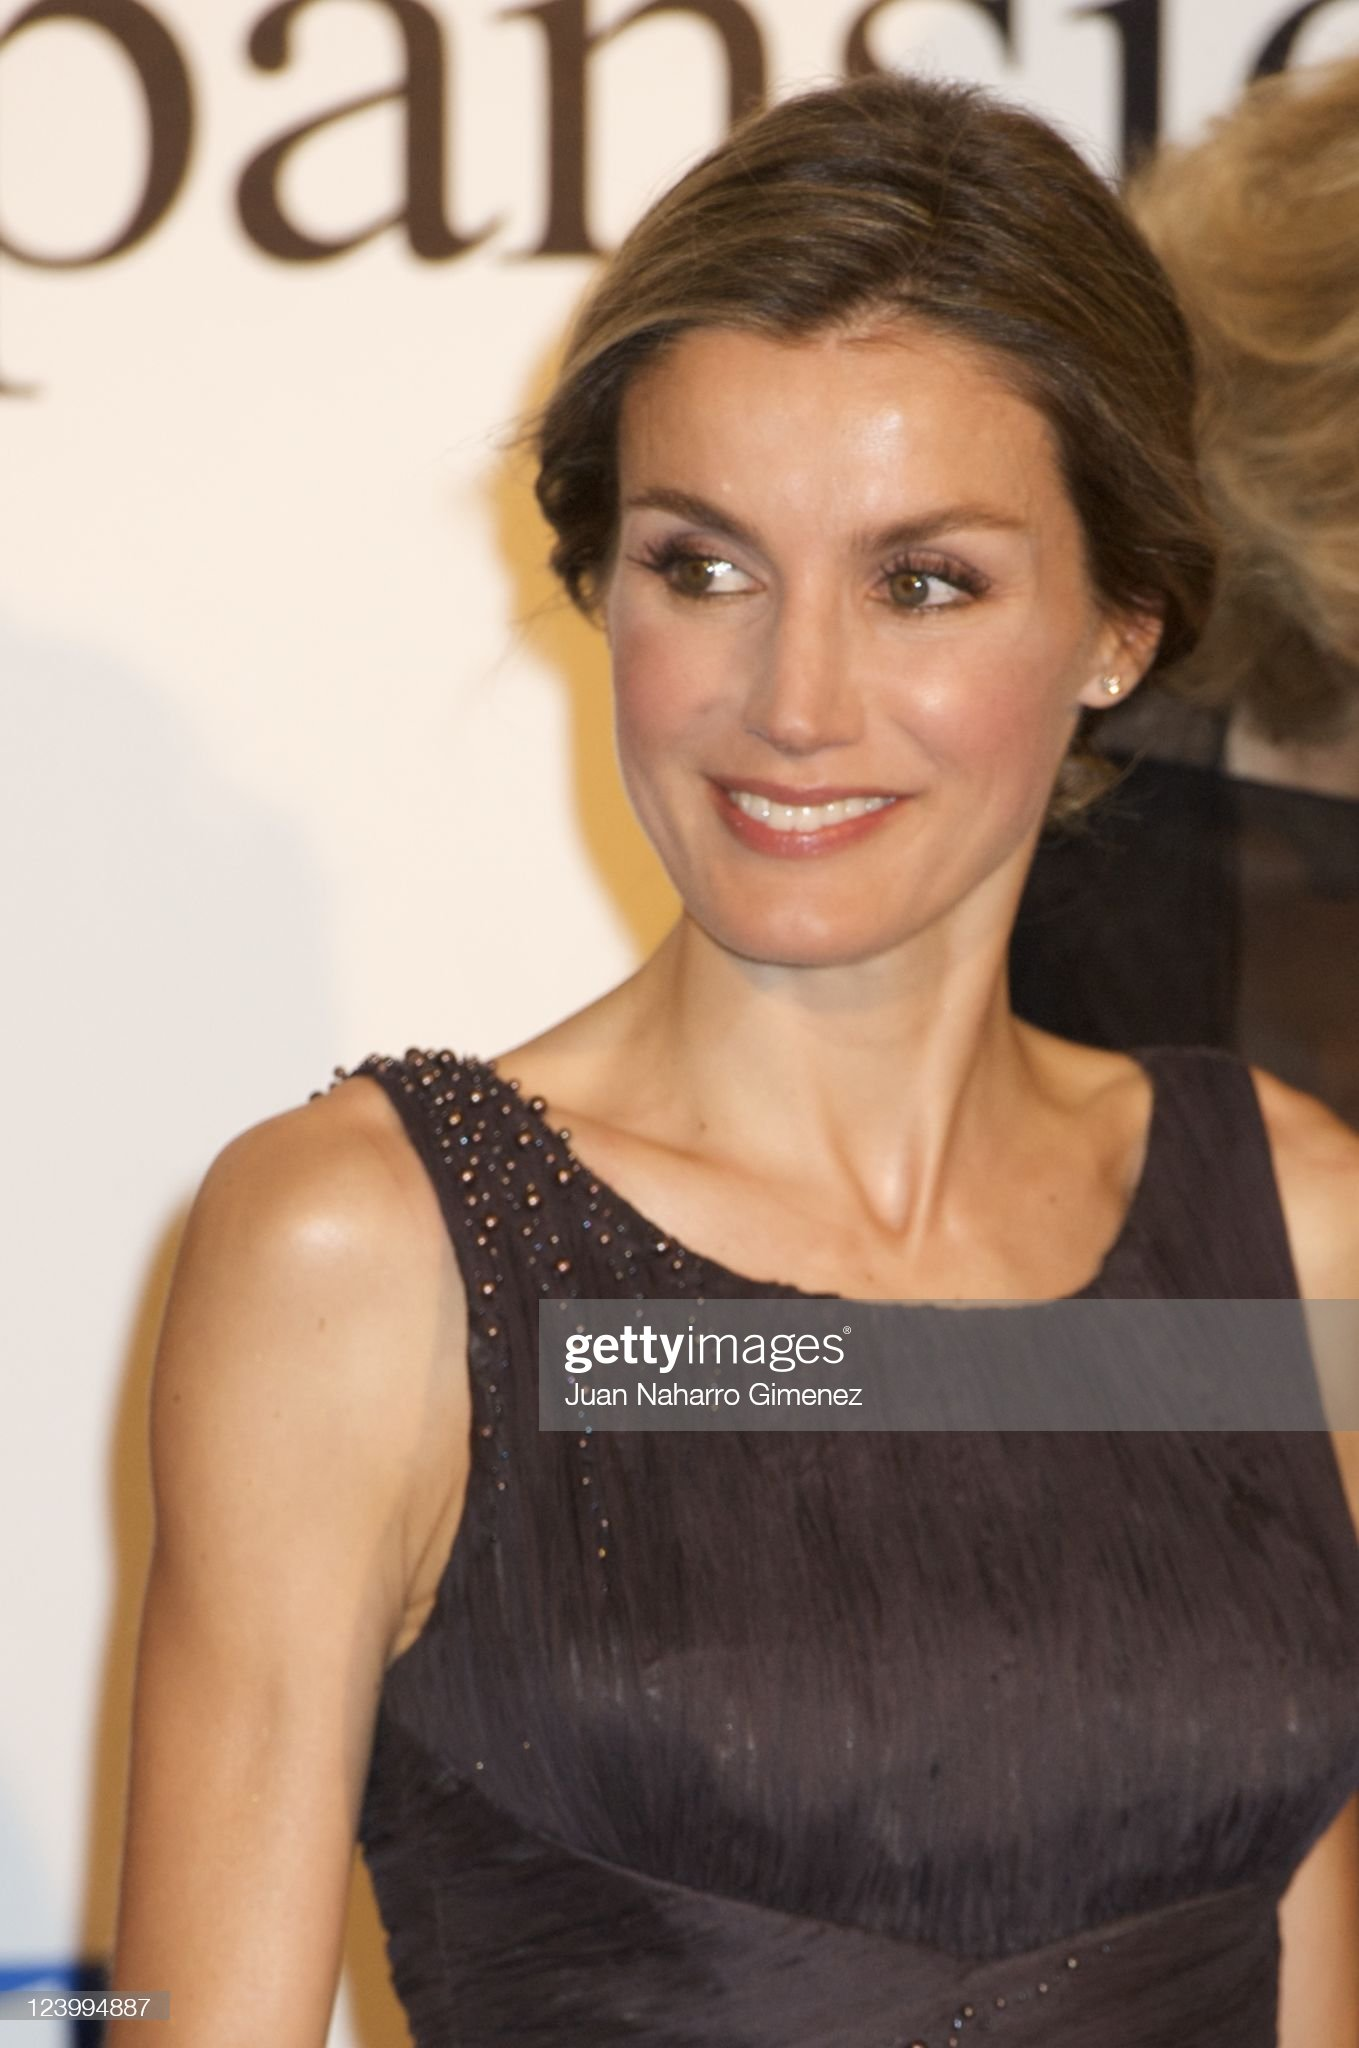 Prince Felipe and Princess Letizia Attend the XXV Anniversary of 'Expansion' Newspaper : News Photo